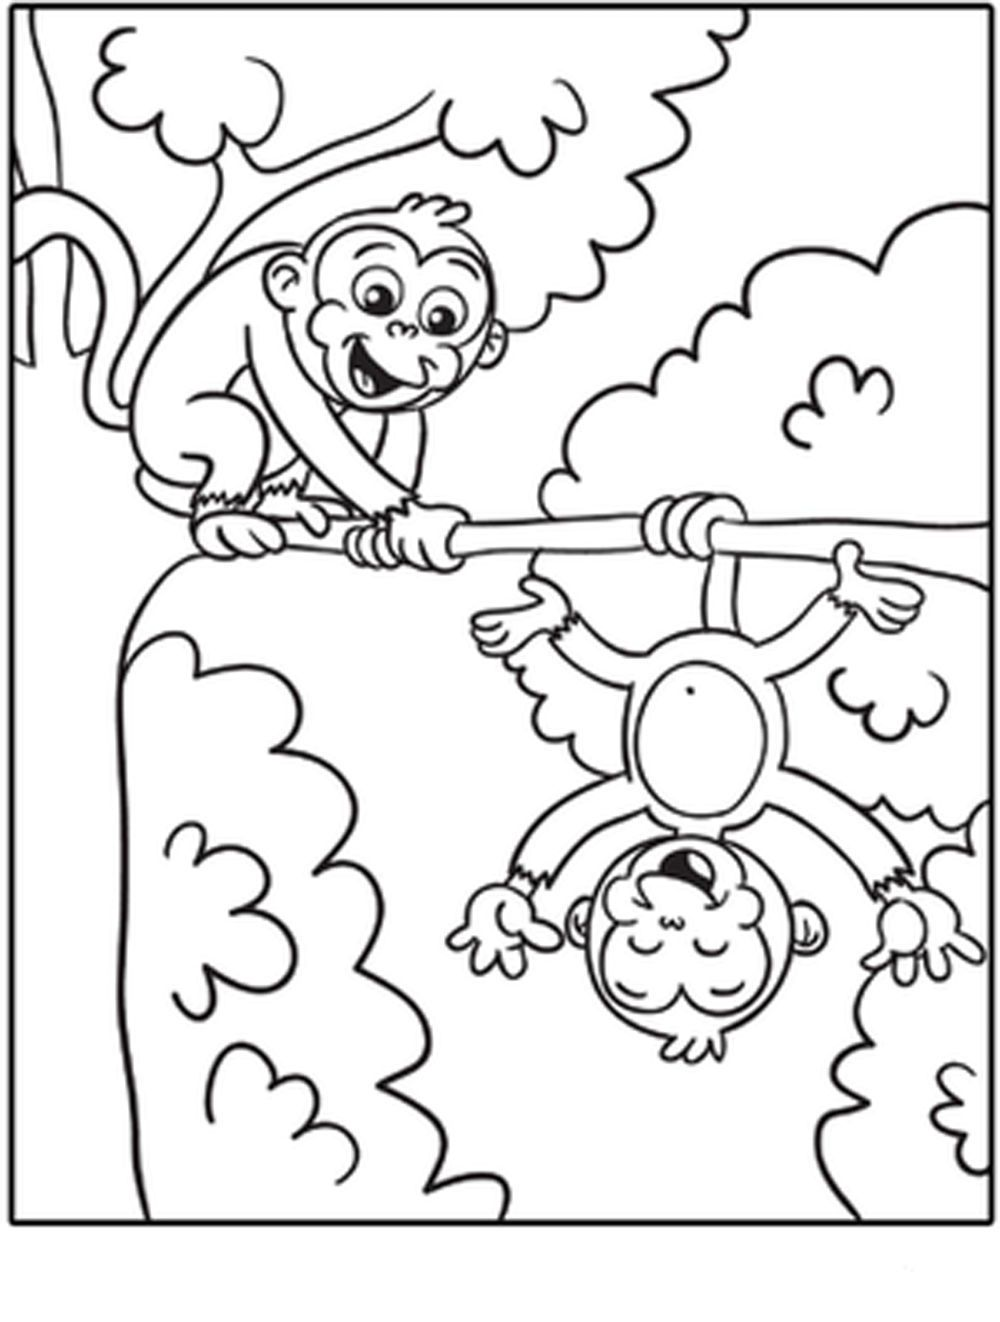 Free coloring pages monkey - Free Monkey Coloring Pages Free Coloring Pages On Masivy World